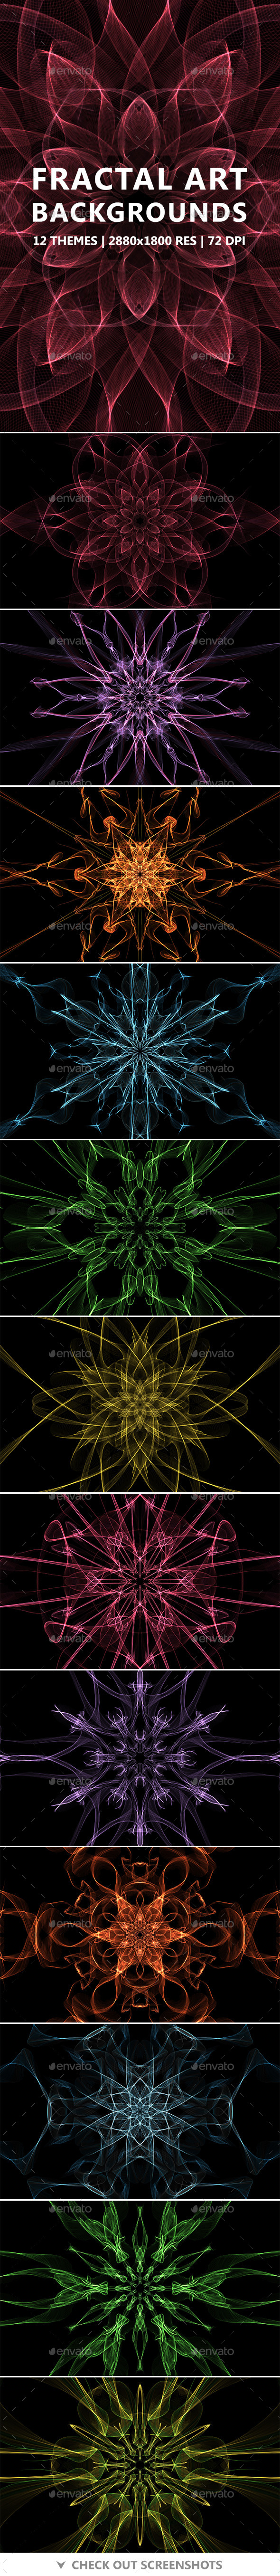 Fractal Art Backgrounds - Abstract Backgrounds